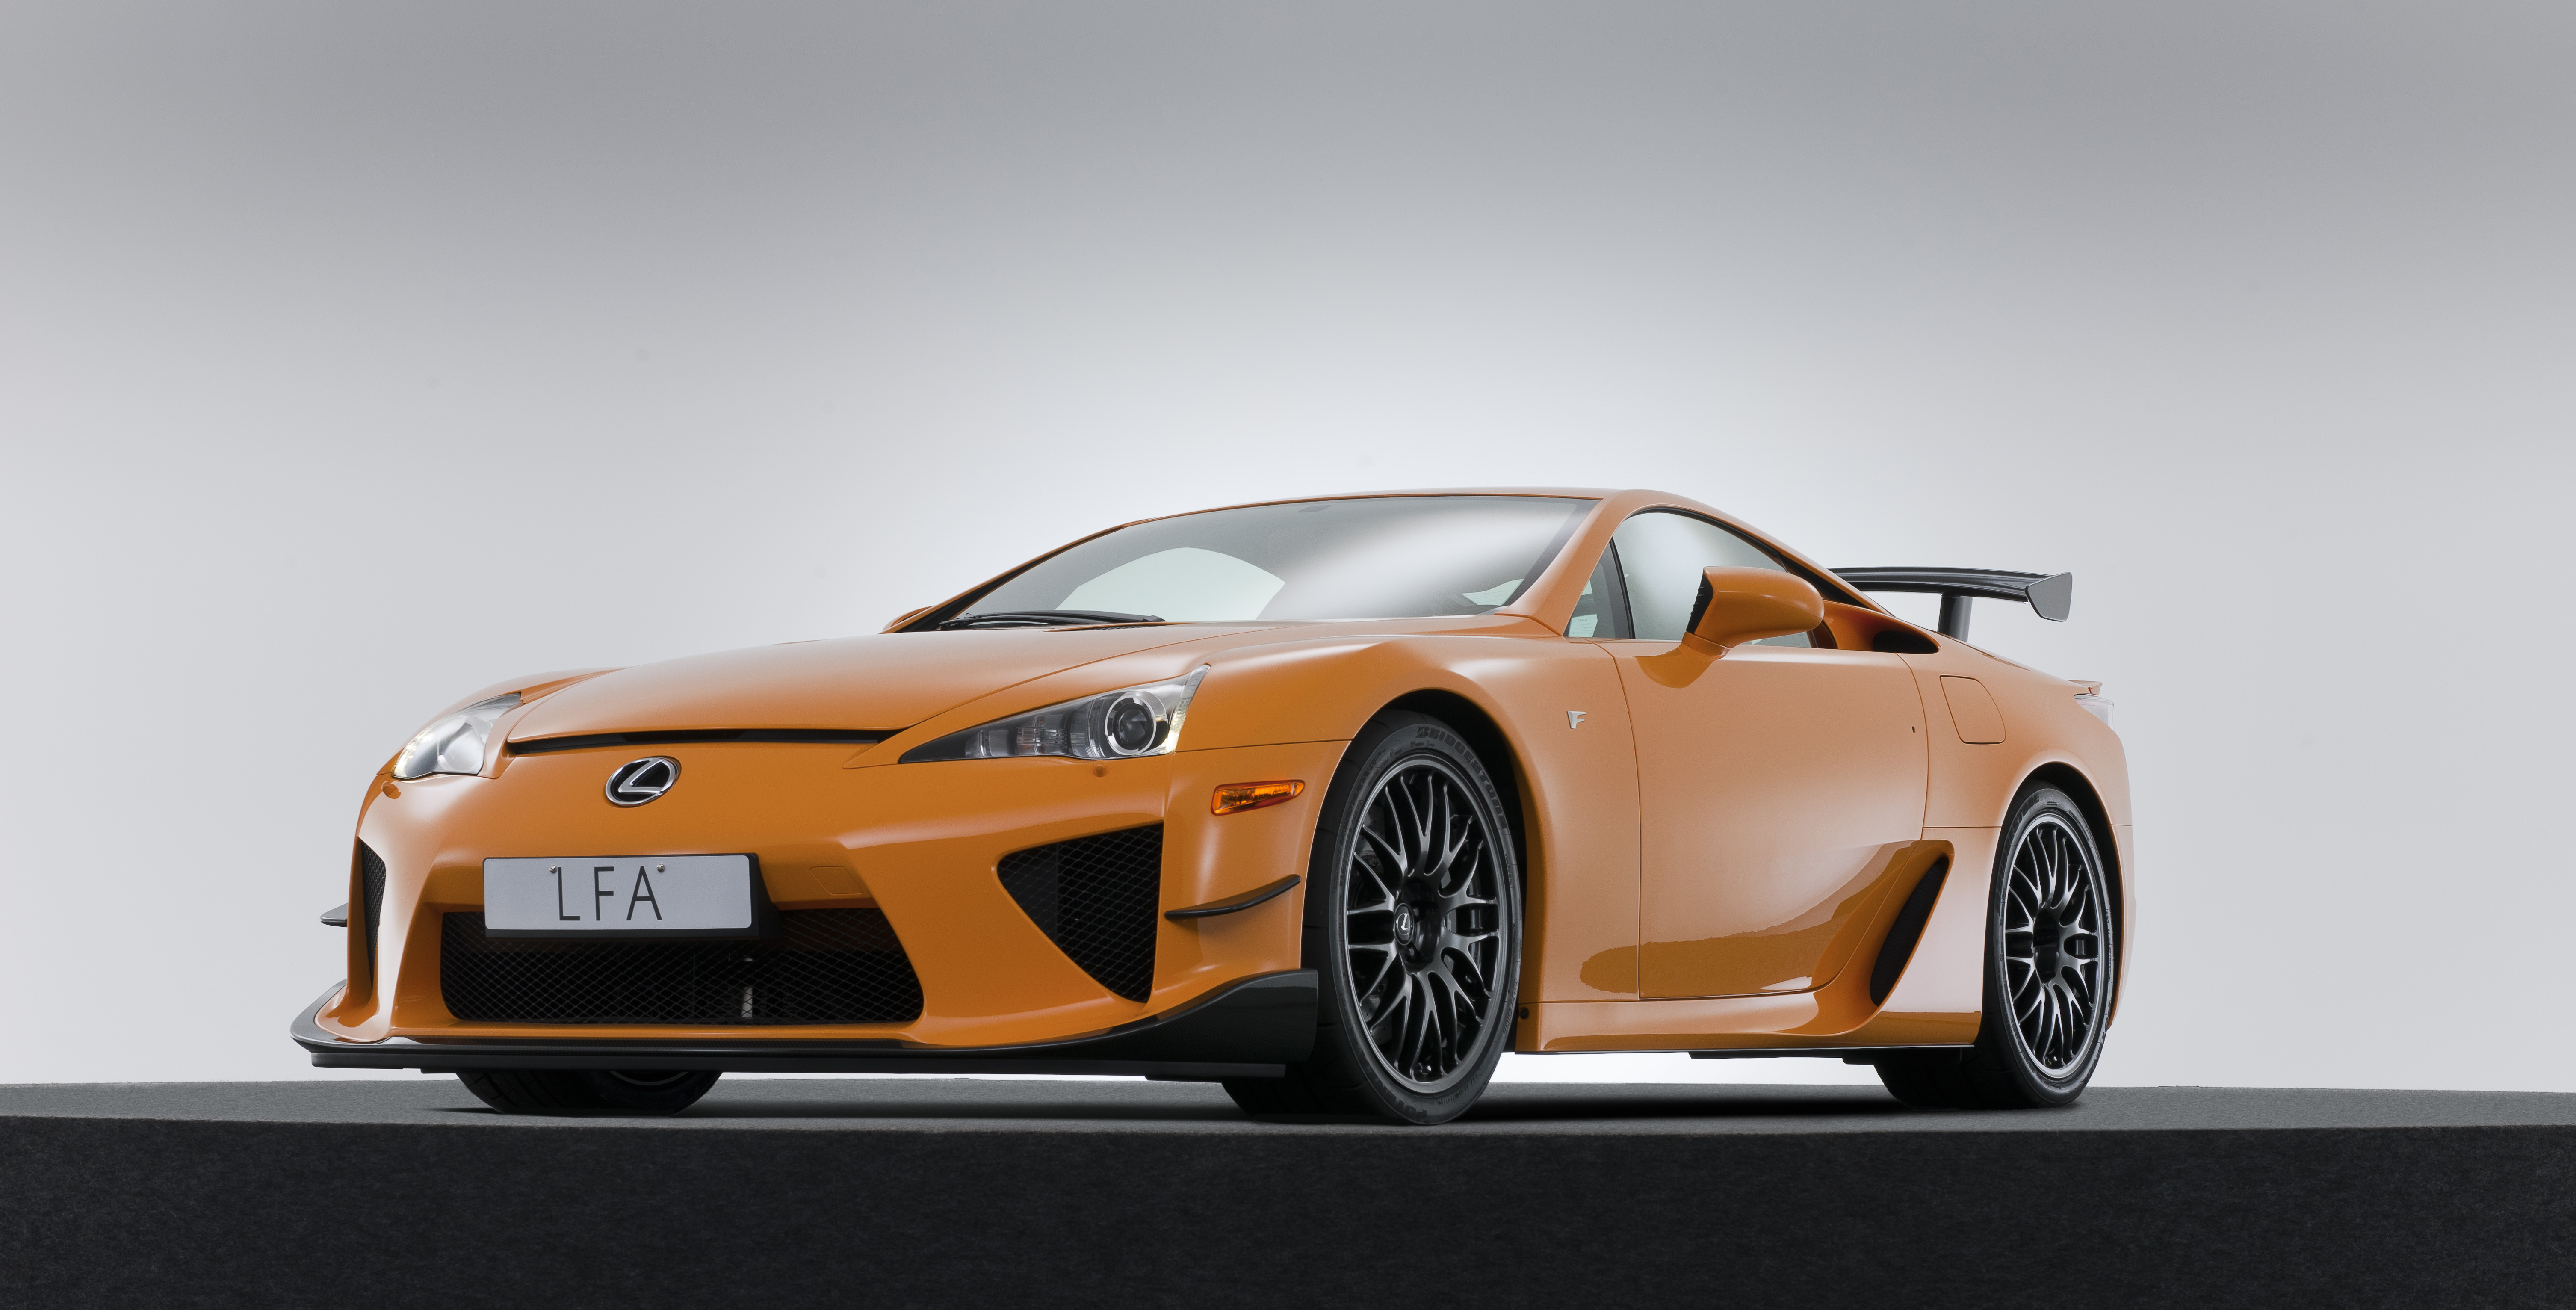 Unconfirmed: Lexus LFA Nürburgring Edition Laps The 'Ring In 7:14